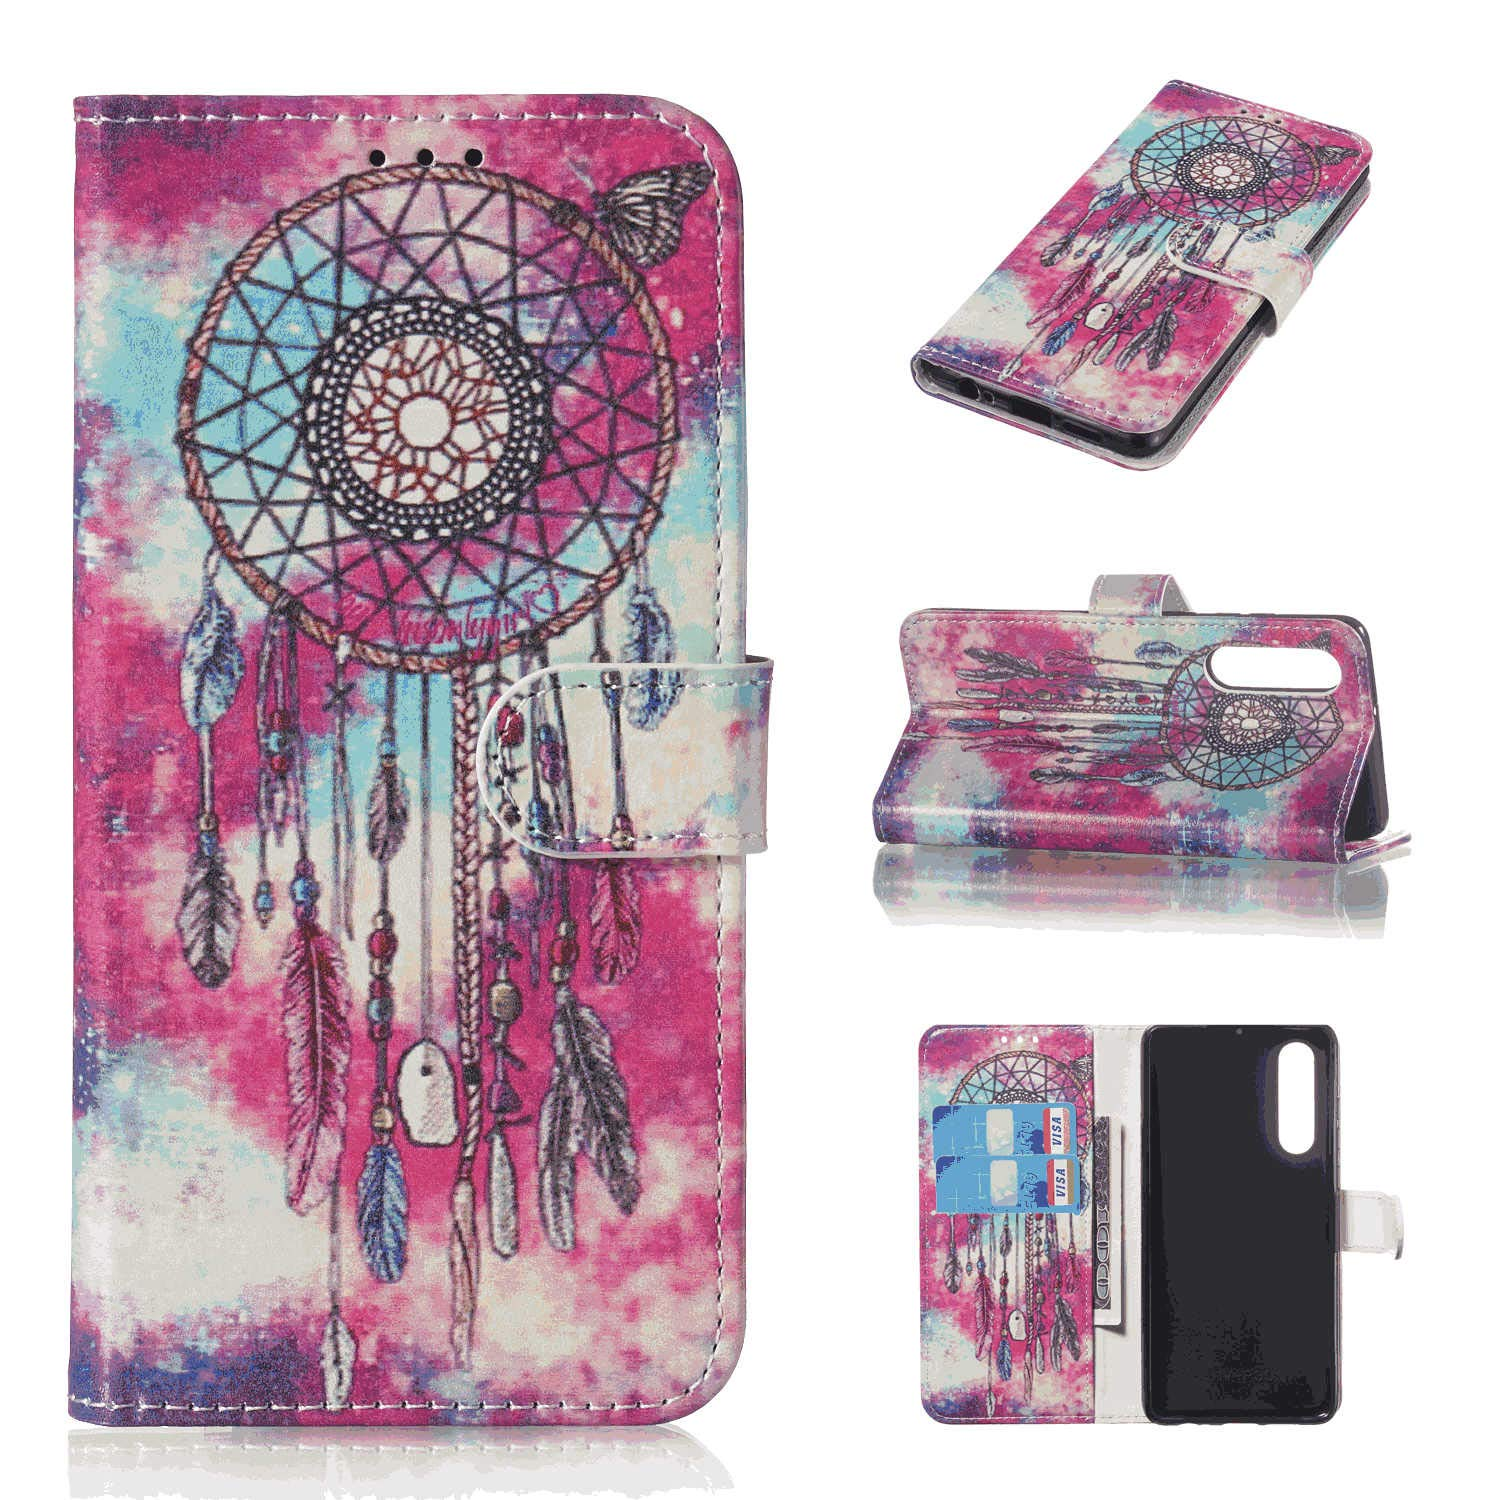 Leather Case Compatible with Huawei P30 lite with Extra Waterproof Case Pouch Wallet Cover for Huawei P30 lite Business Gifts